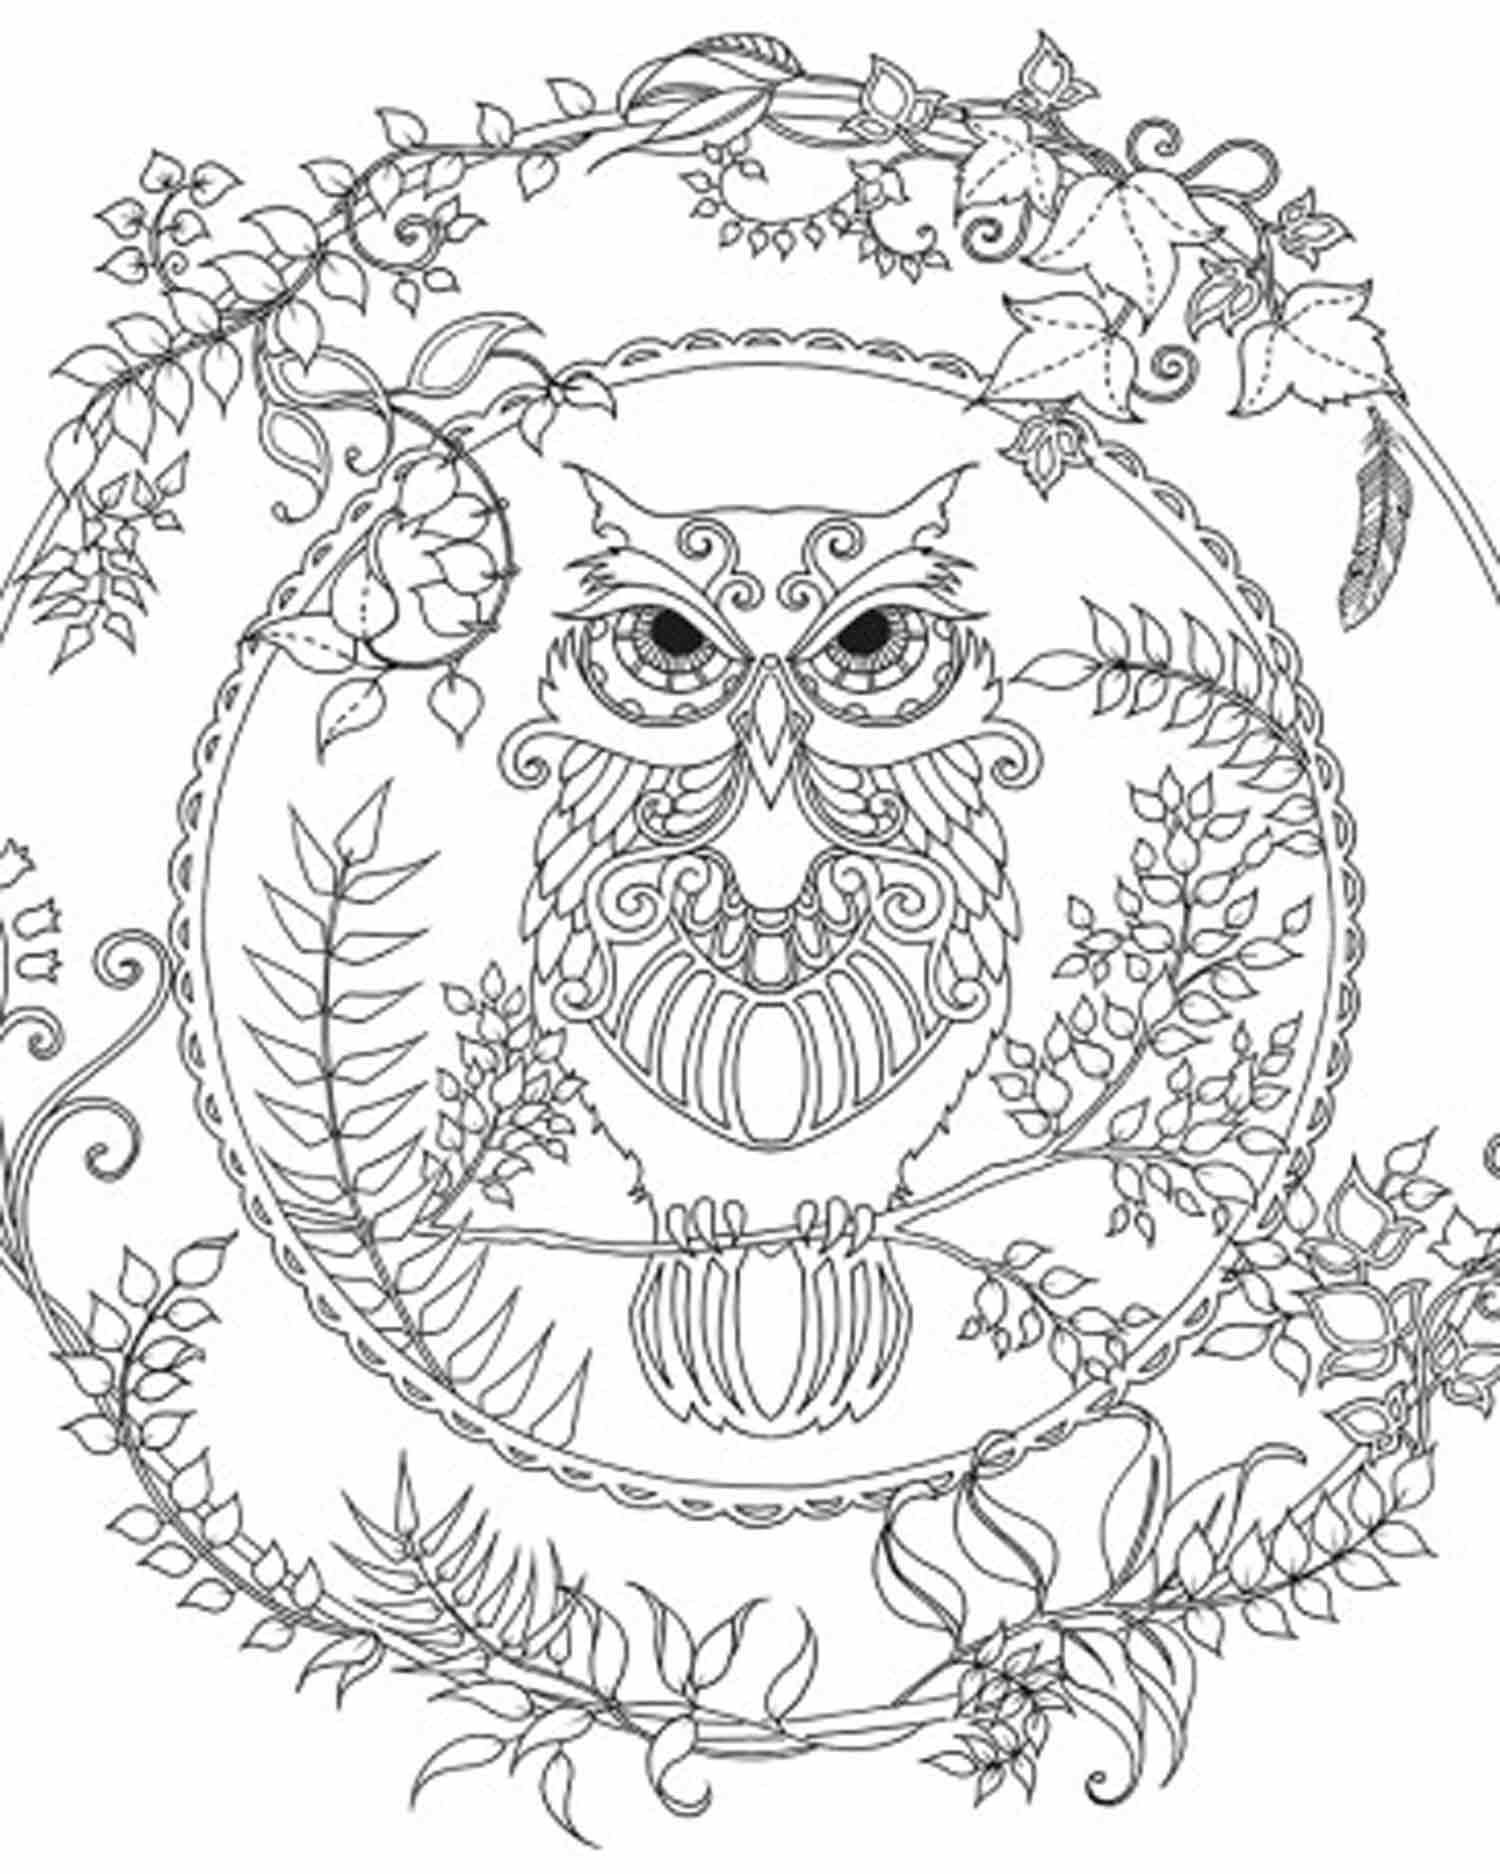 Owl coloring pages free - Brightbird Free Adult Coloring Pages